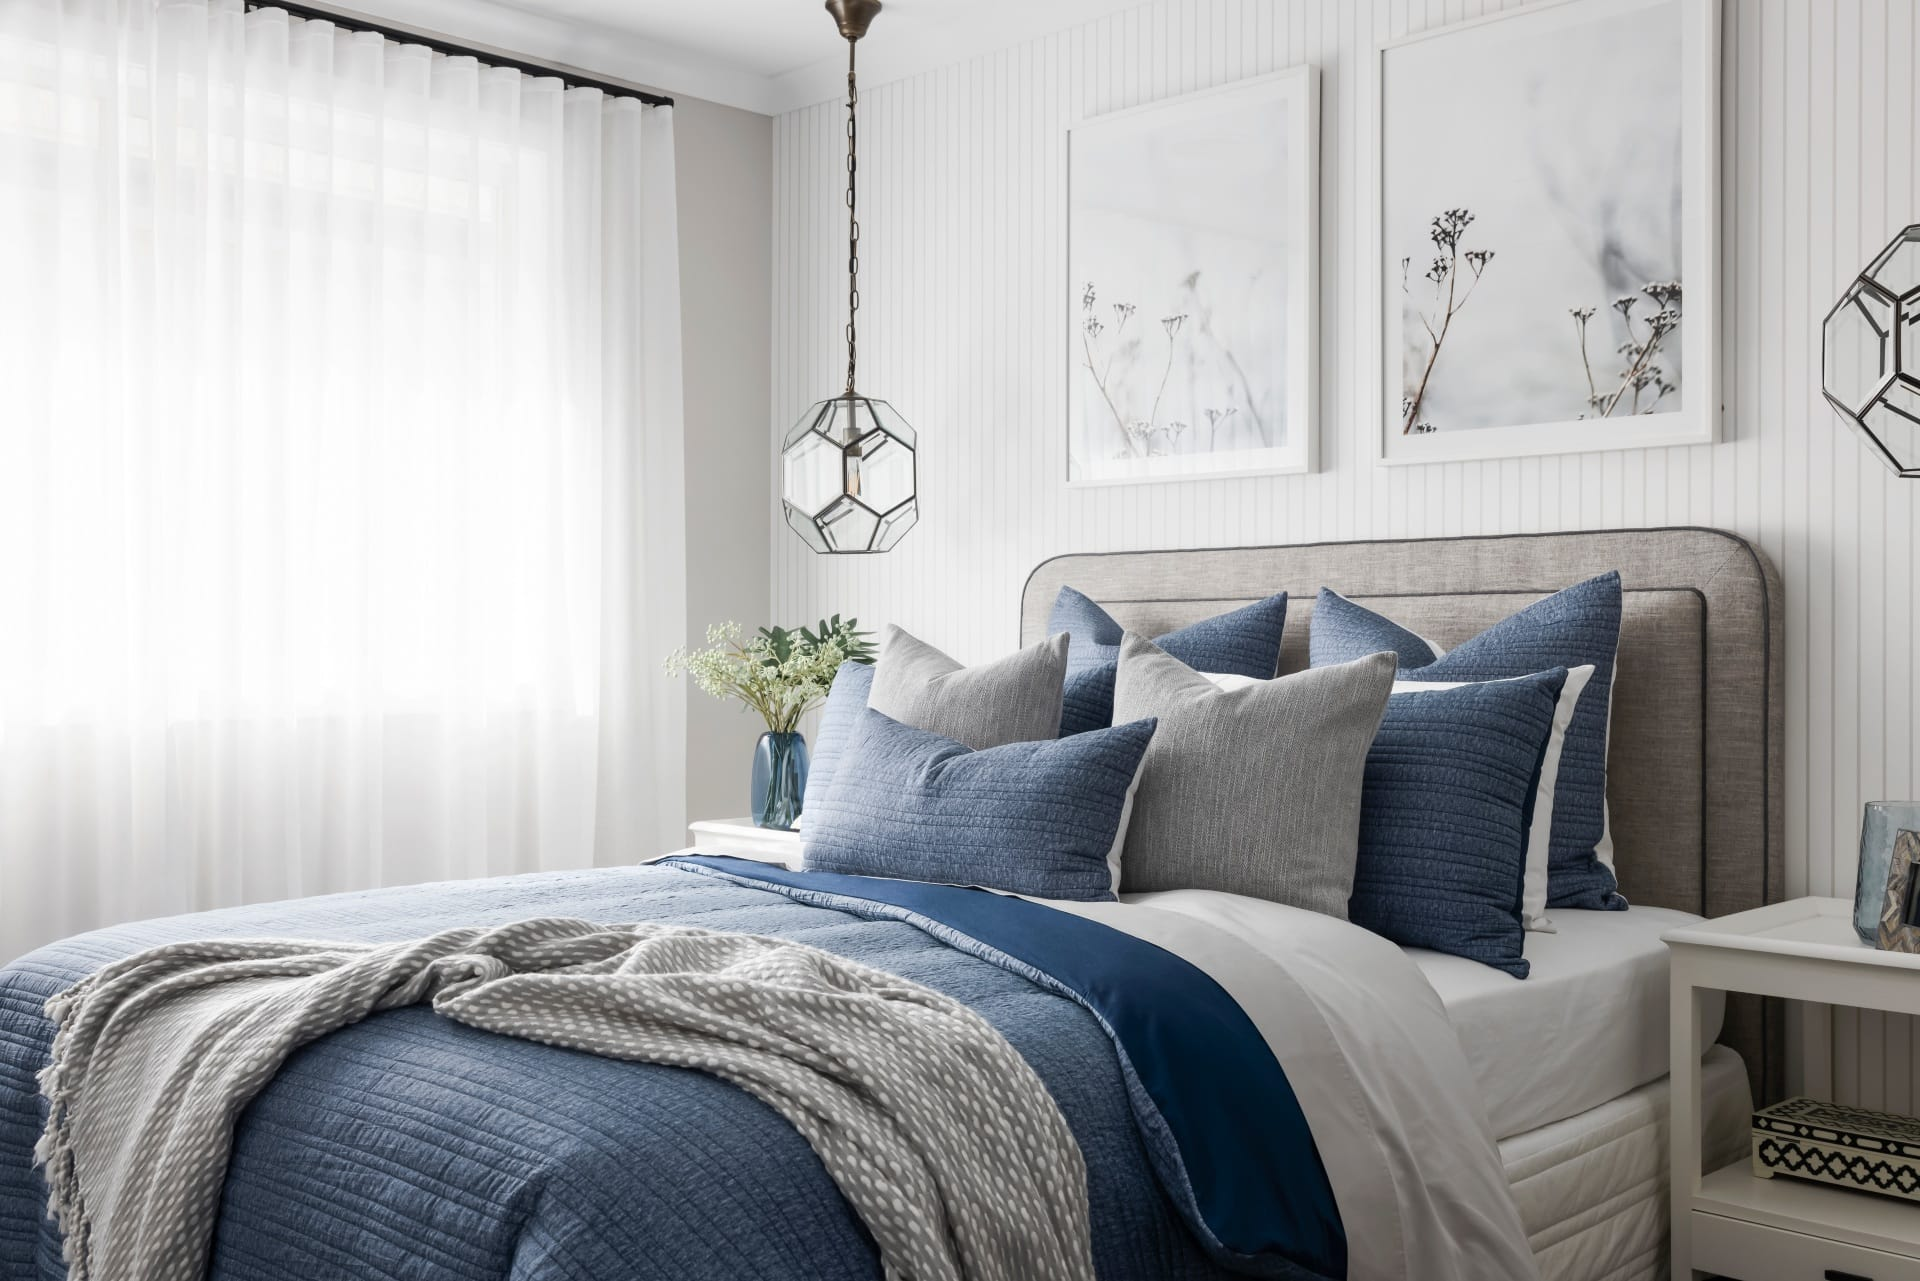 blue and white hamptons bedroom styling with glass hamptons pendant lights and stripe wallpaper